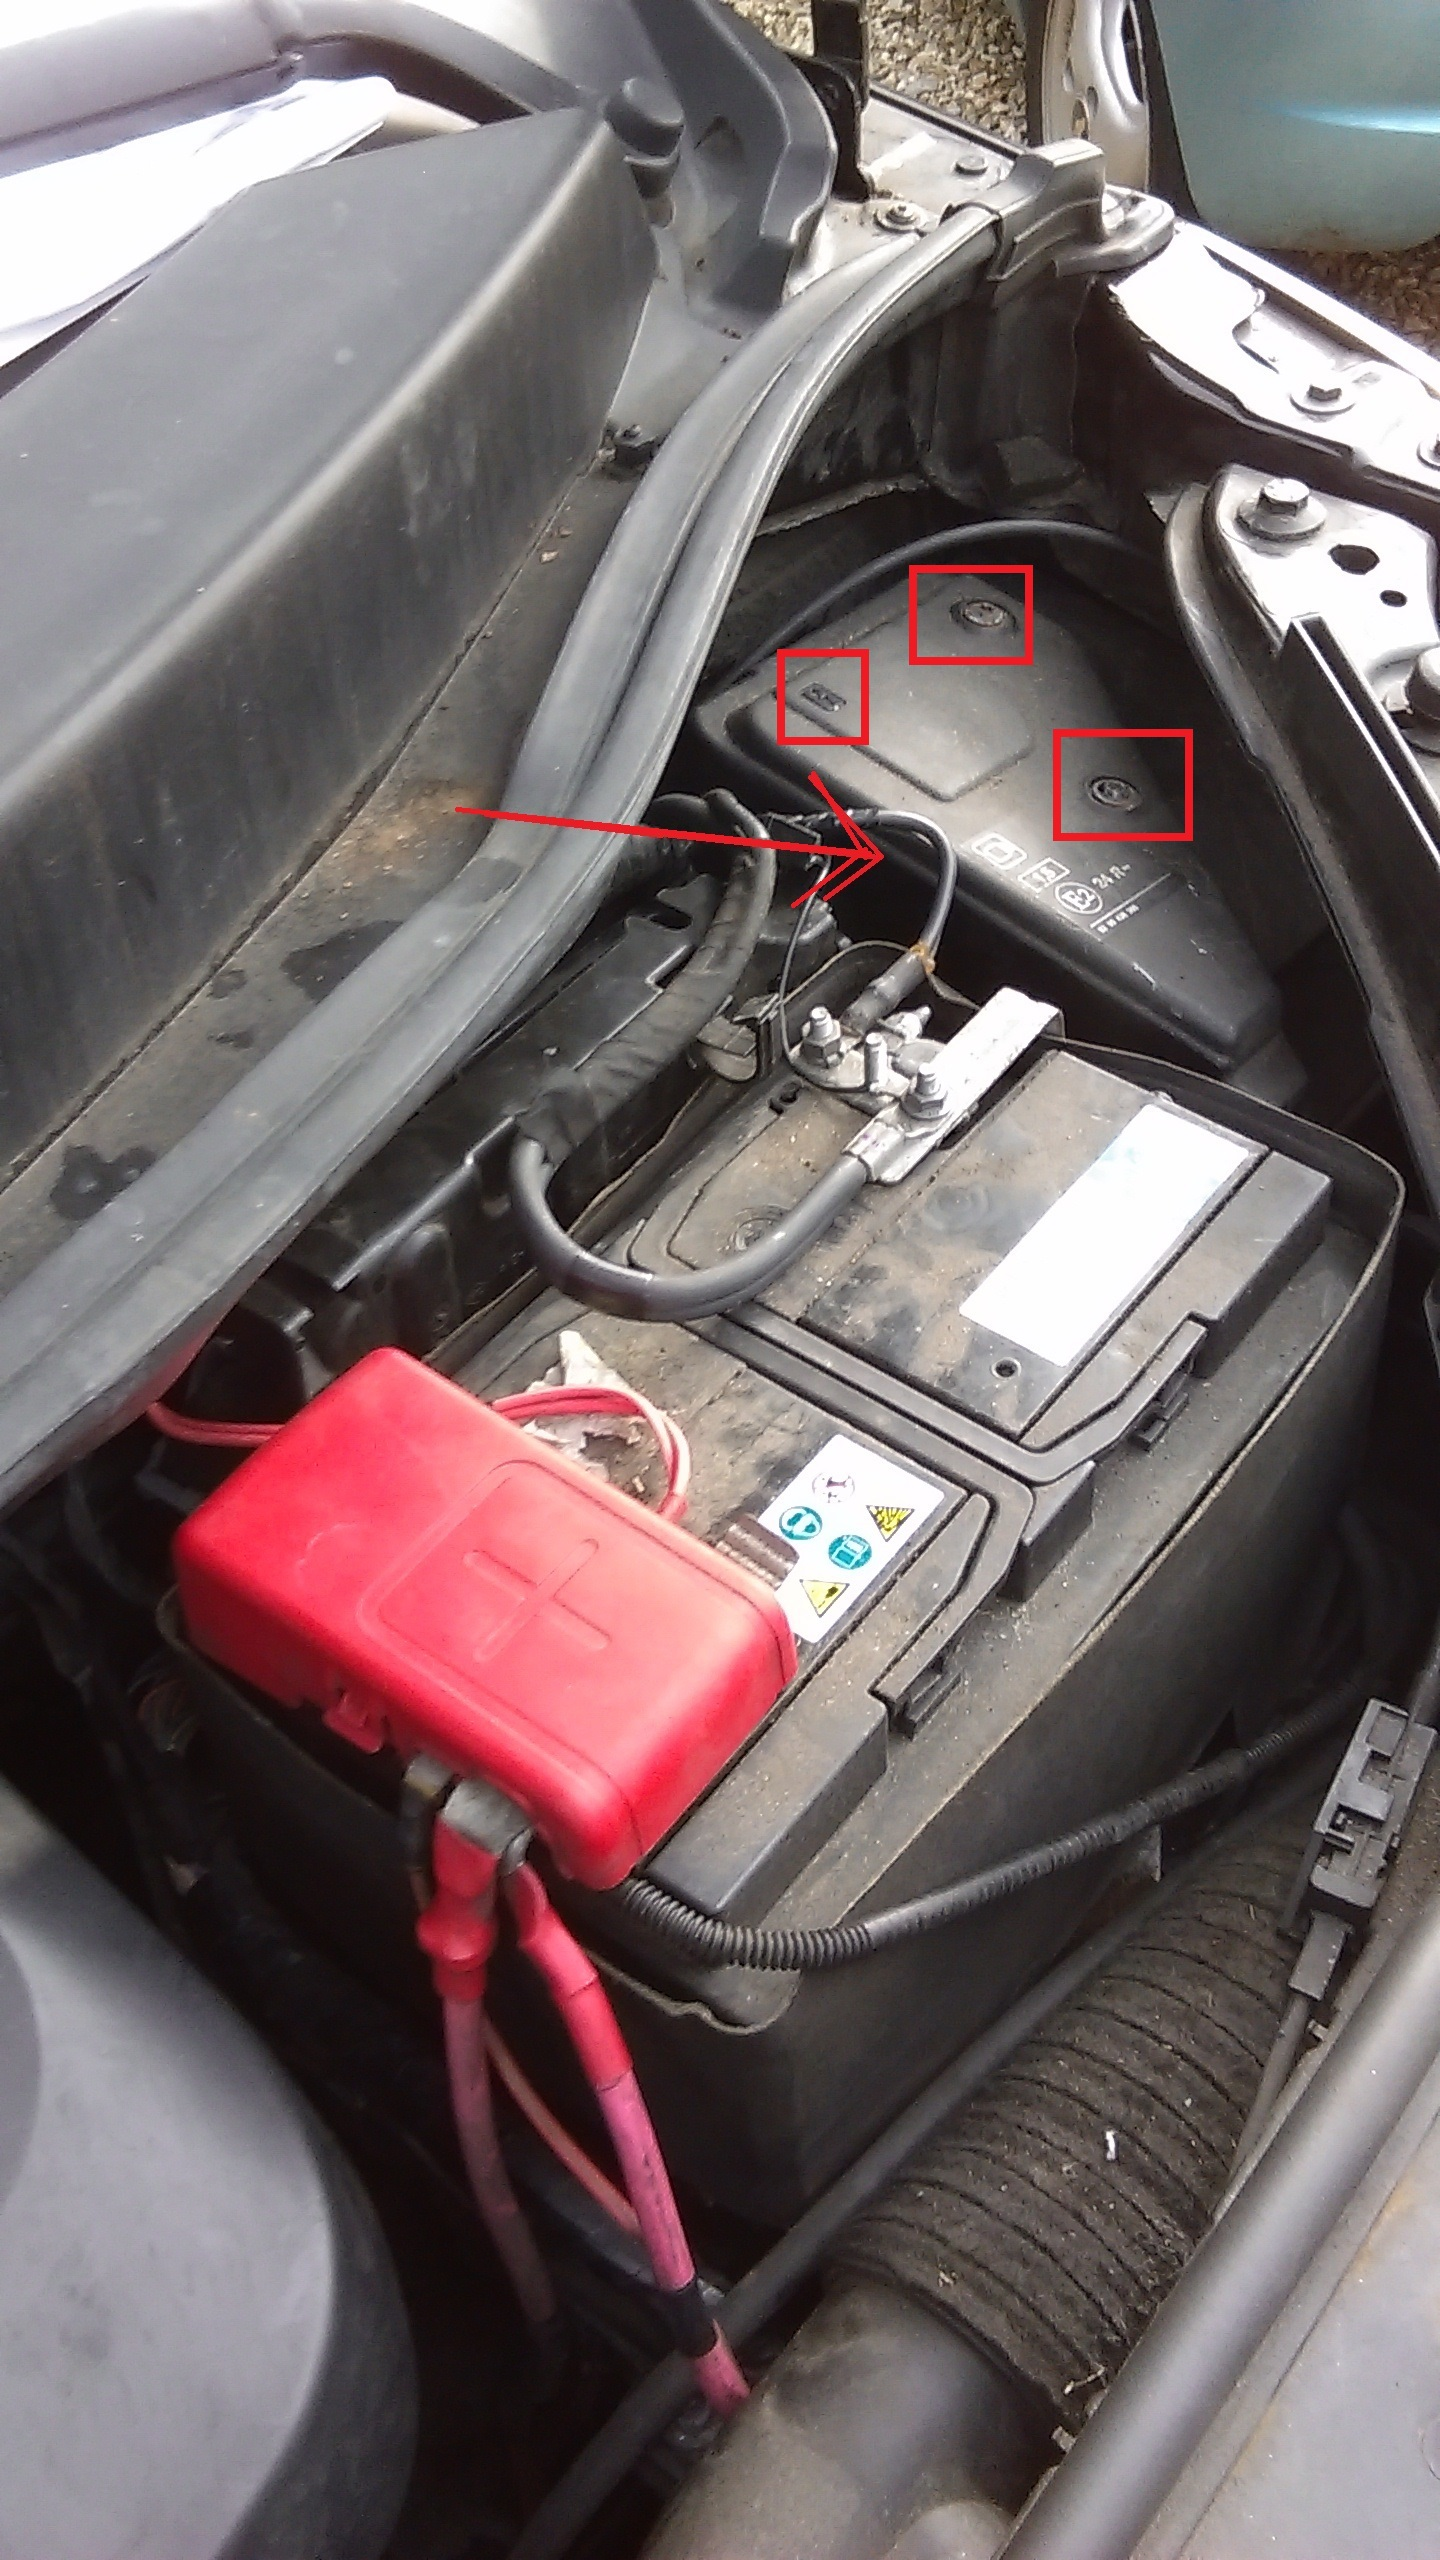 Fuse Box On A Renault Scenic - Wiring Diagram M2 Fuse Box On Renault Megane on